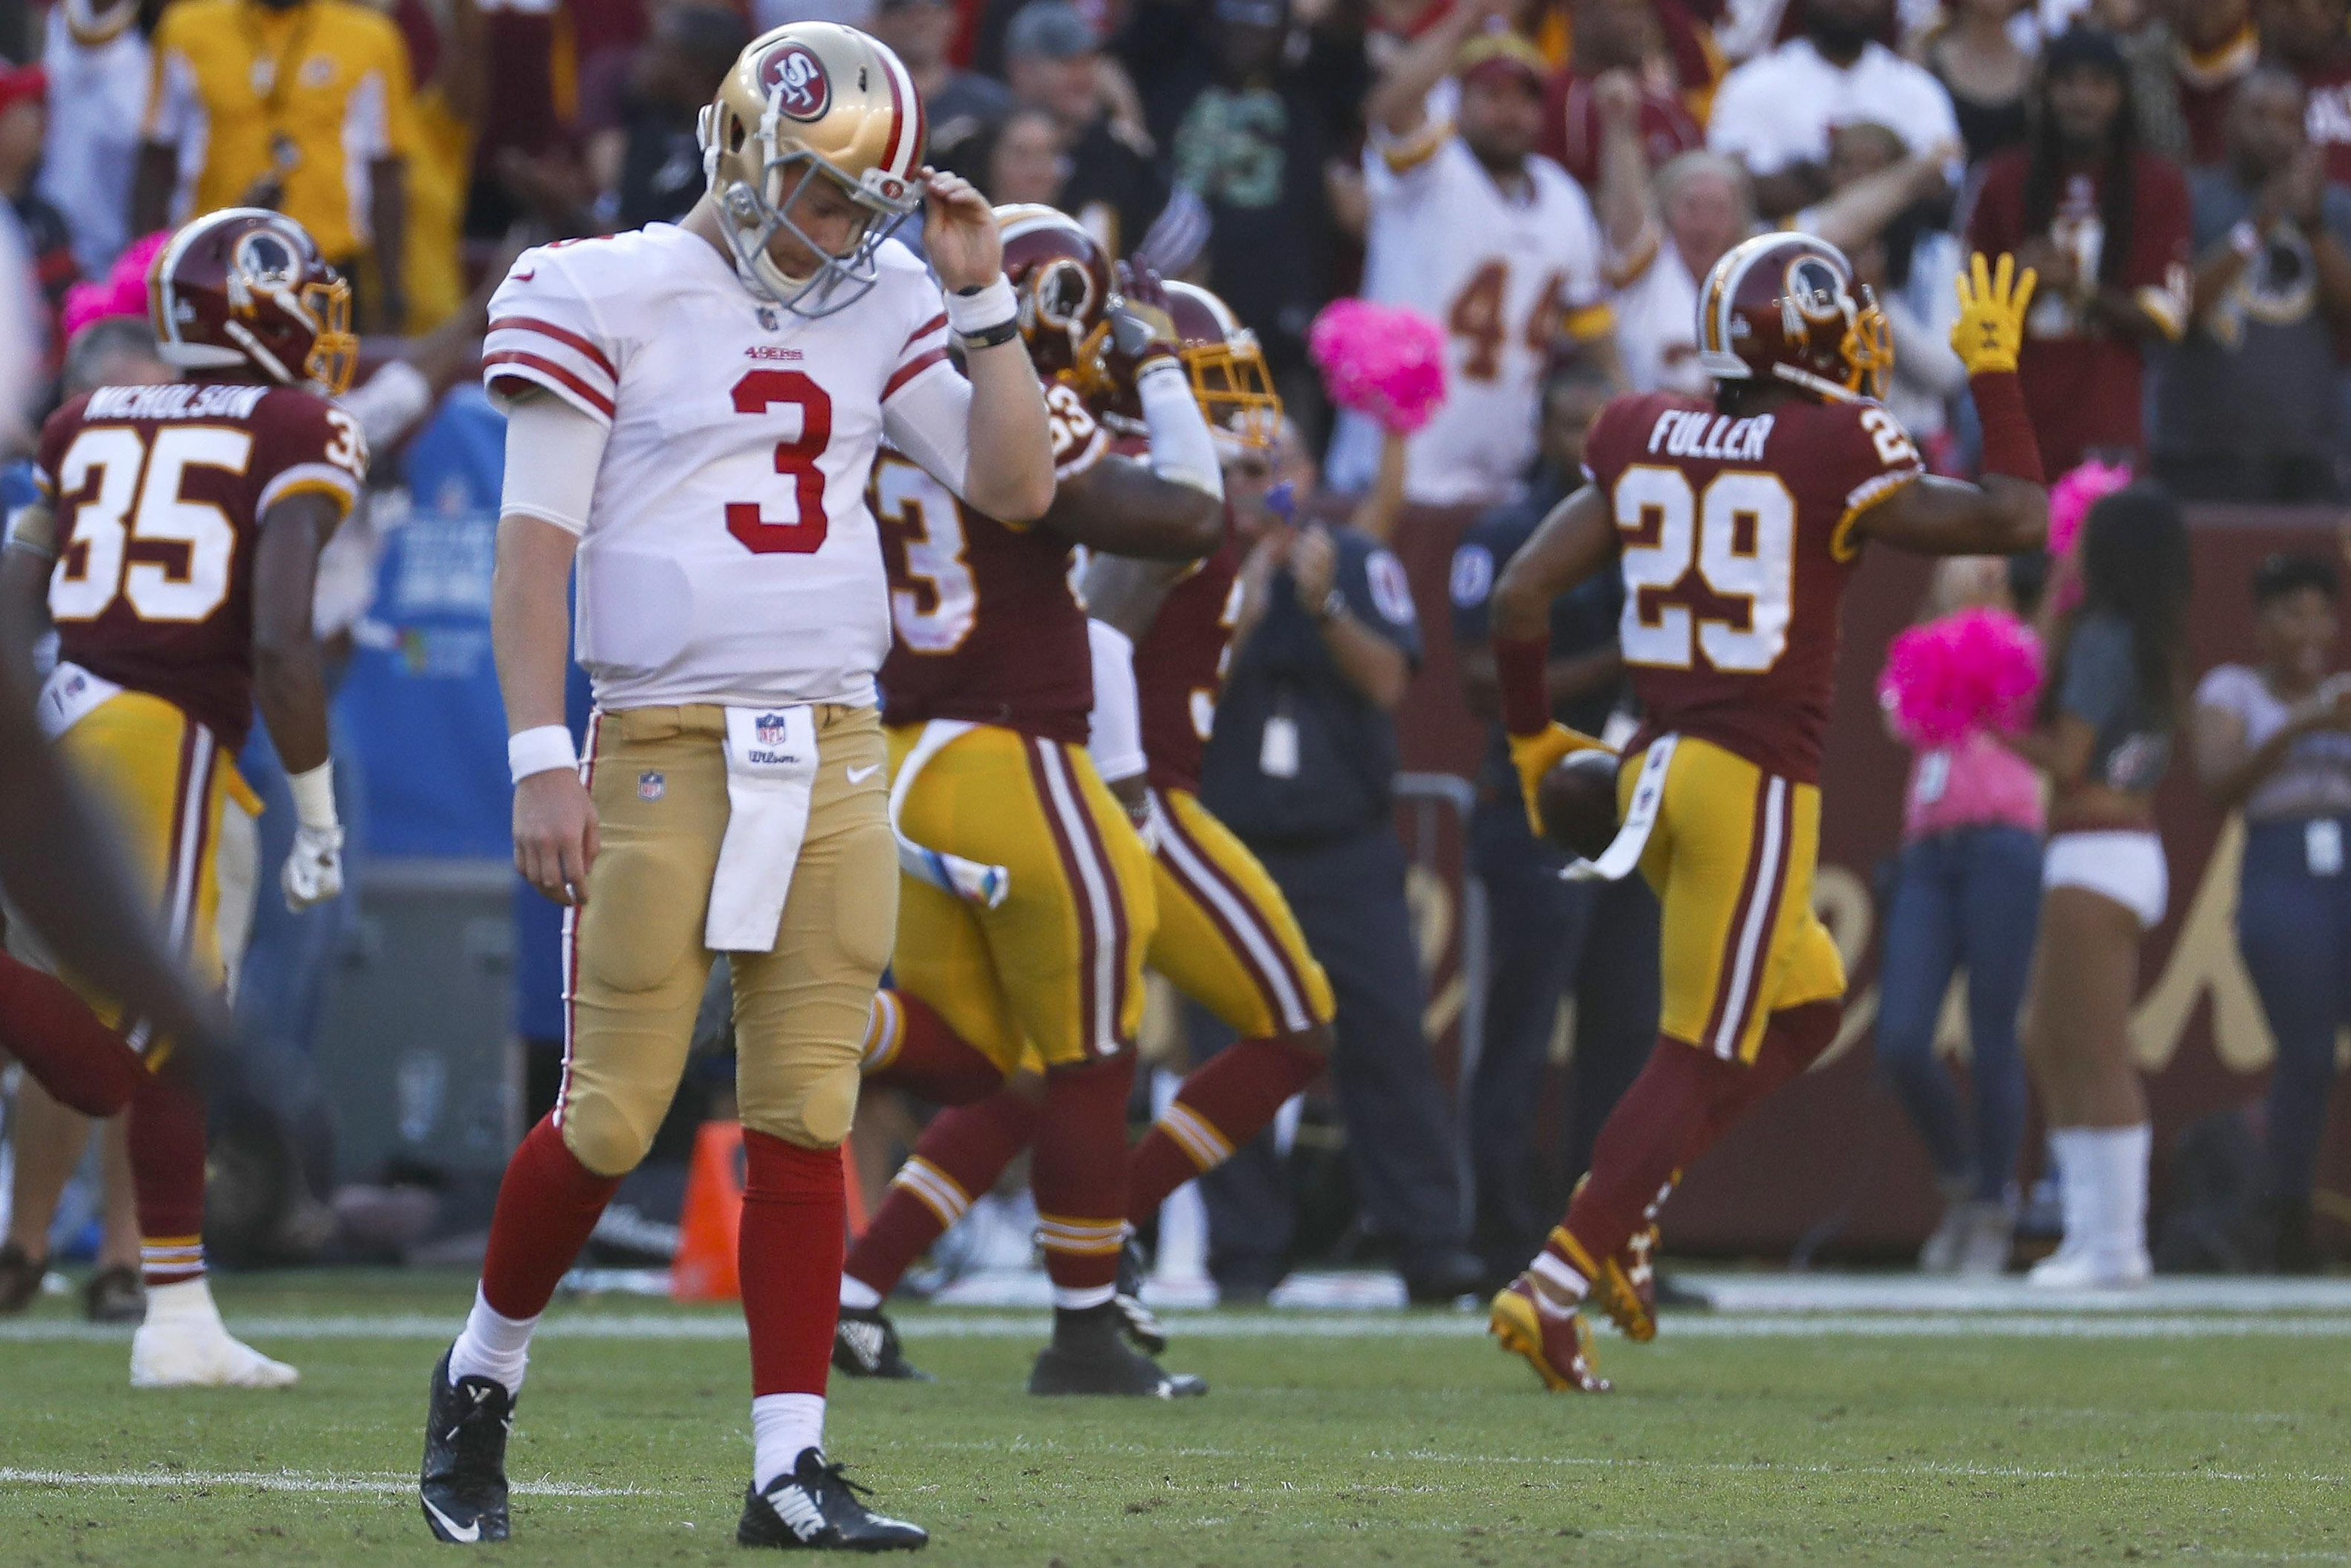 49ers_redskins_football_06006_s4096x2732